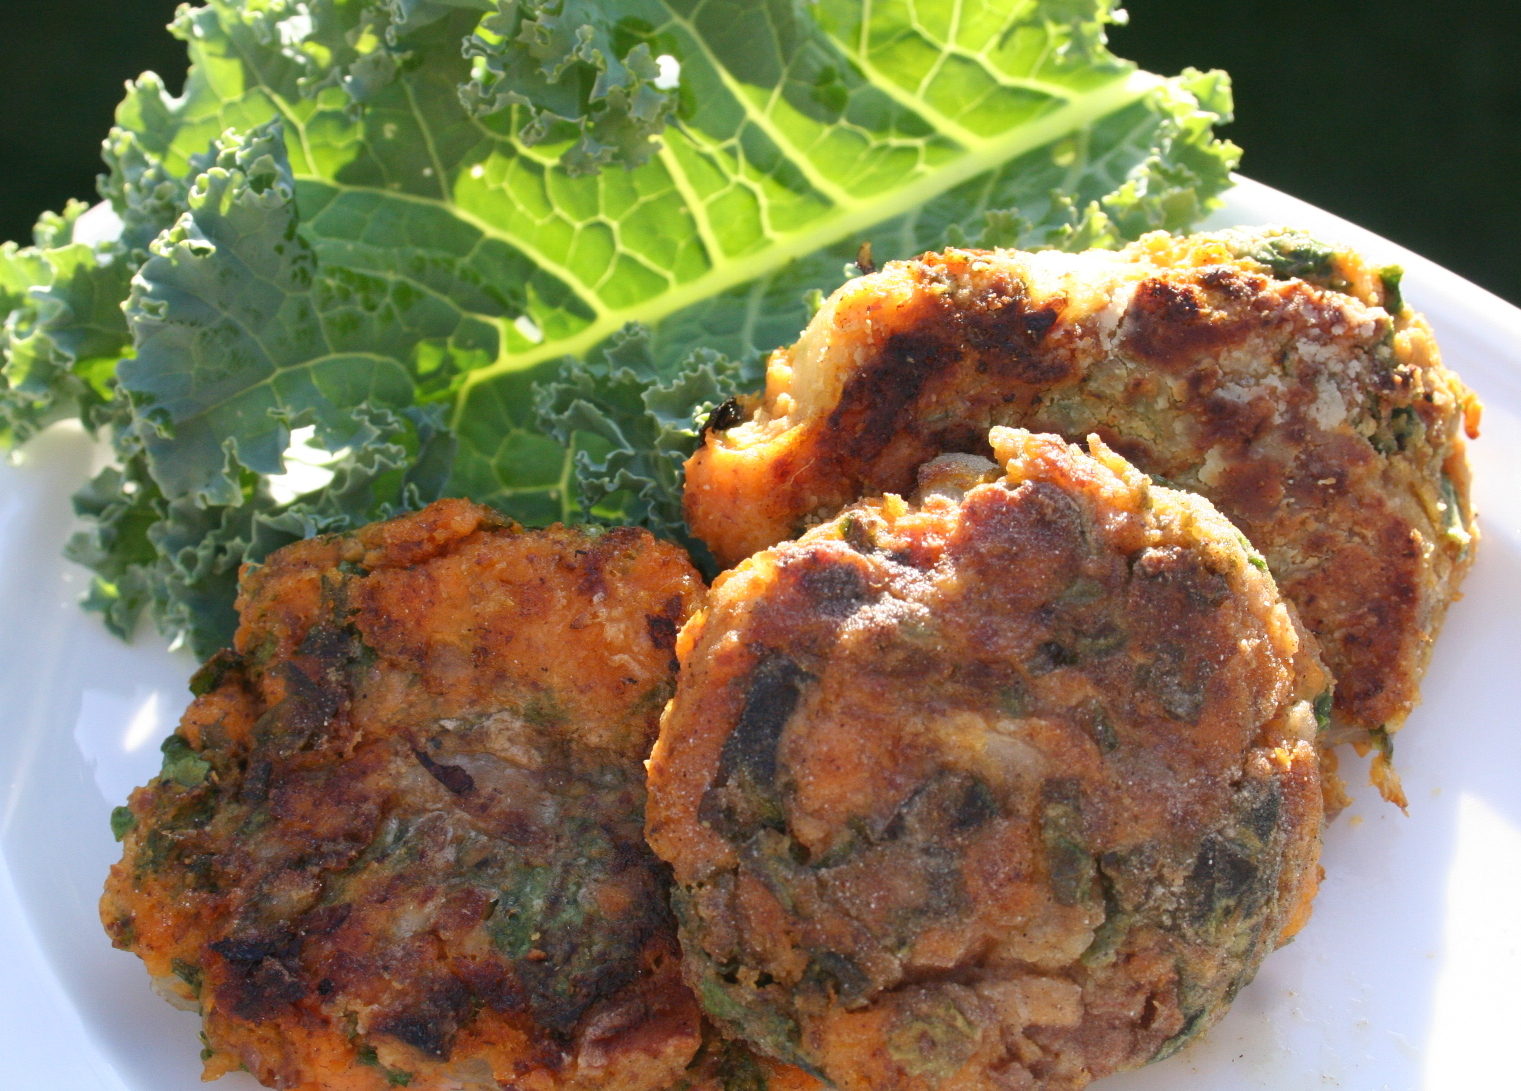 ... kale and quinoa cakes mini kale and goat cheese risotto cakes